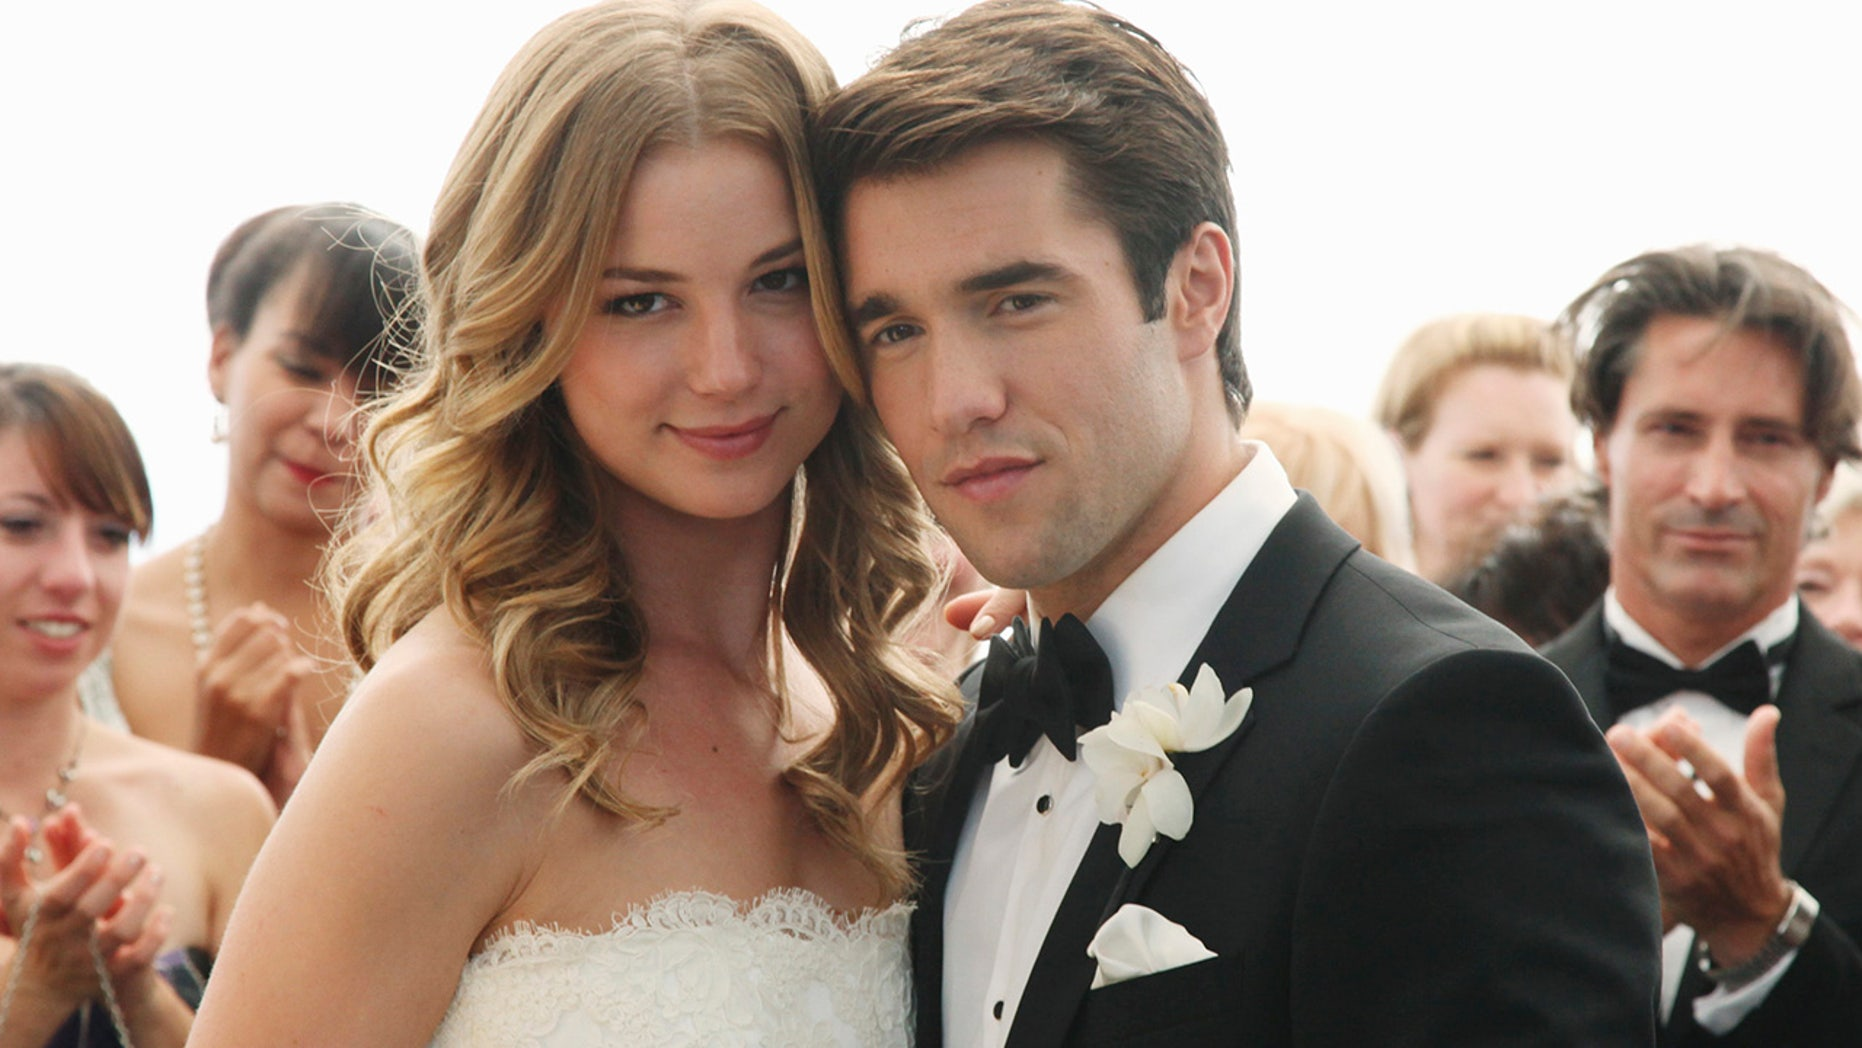 josh bowman and emily vancamp dating since